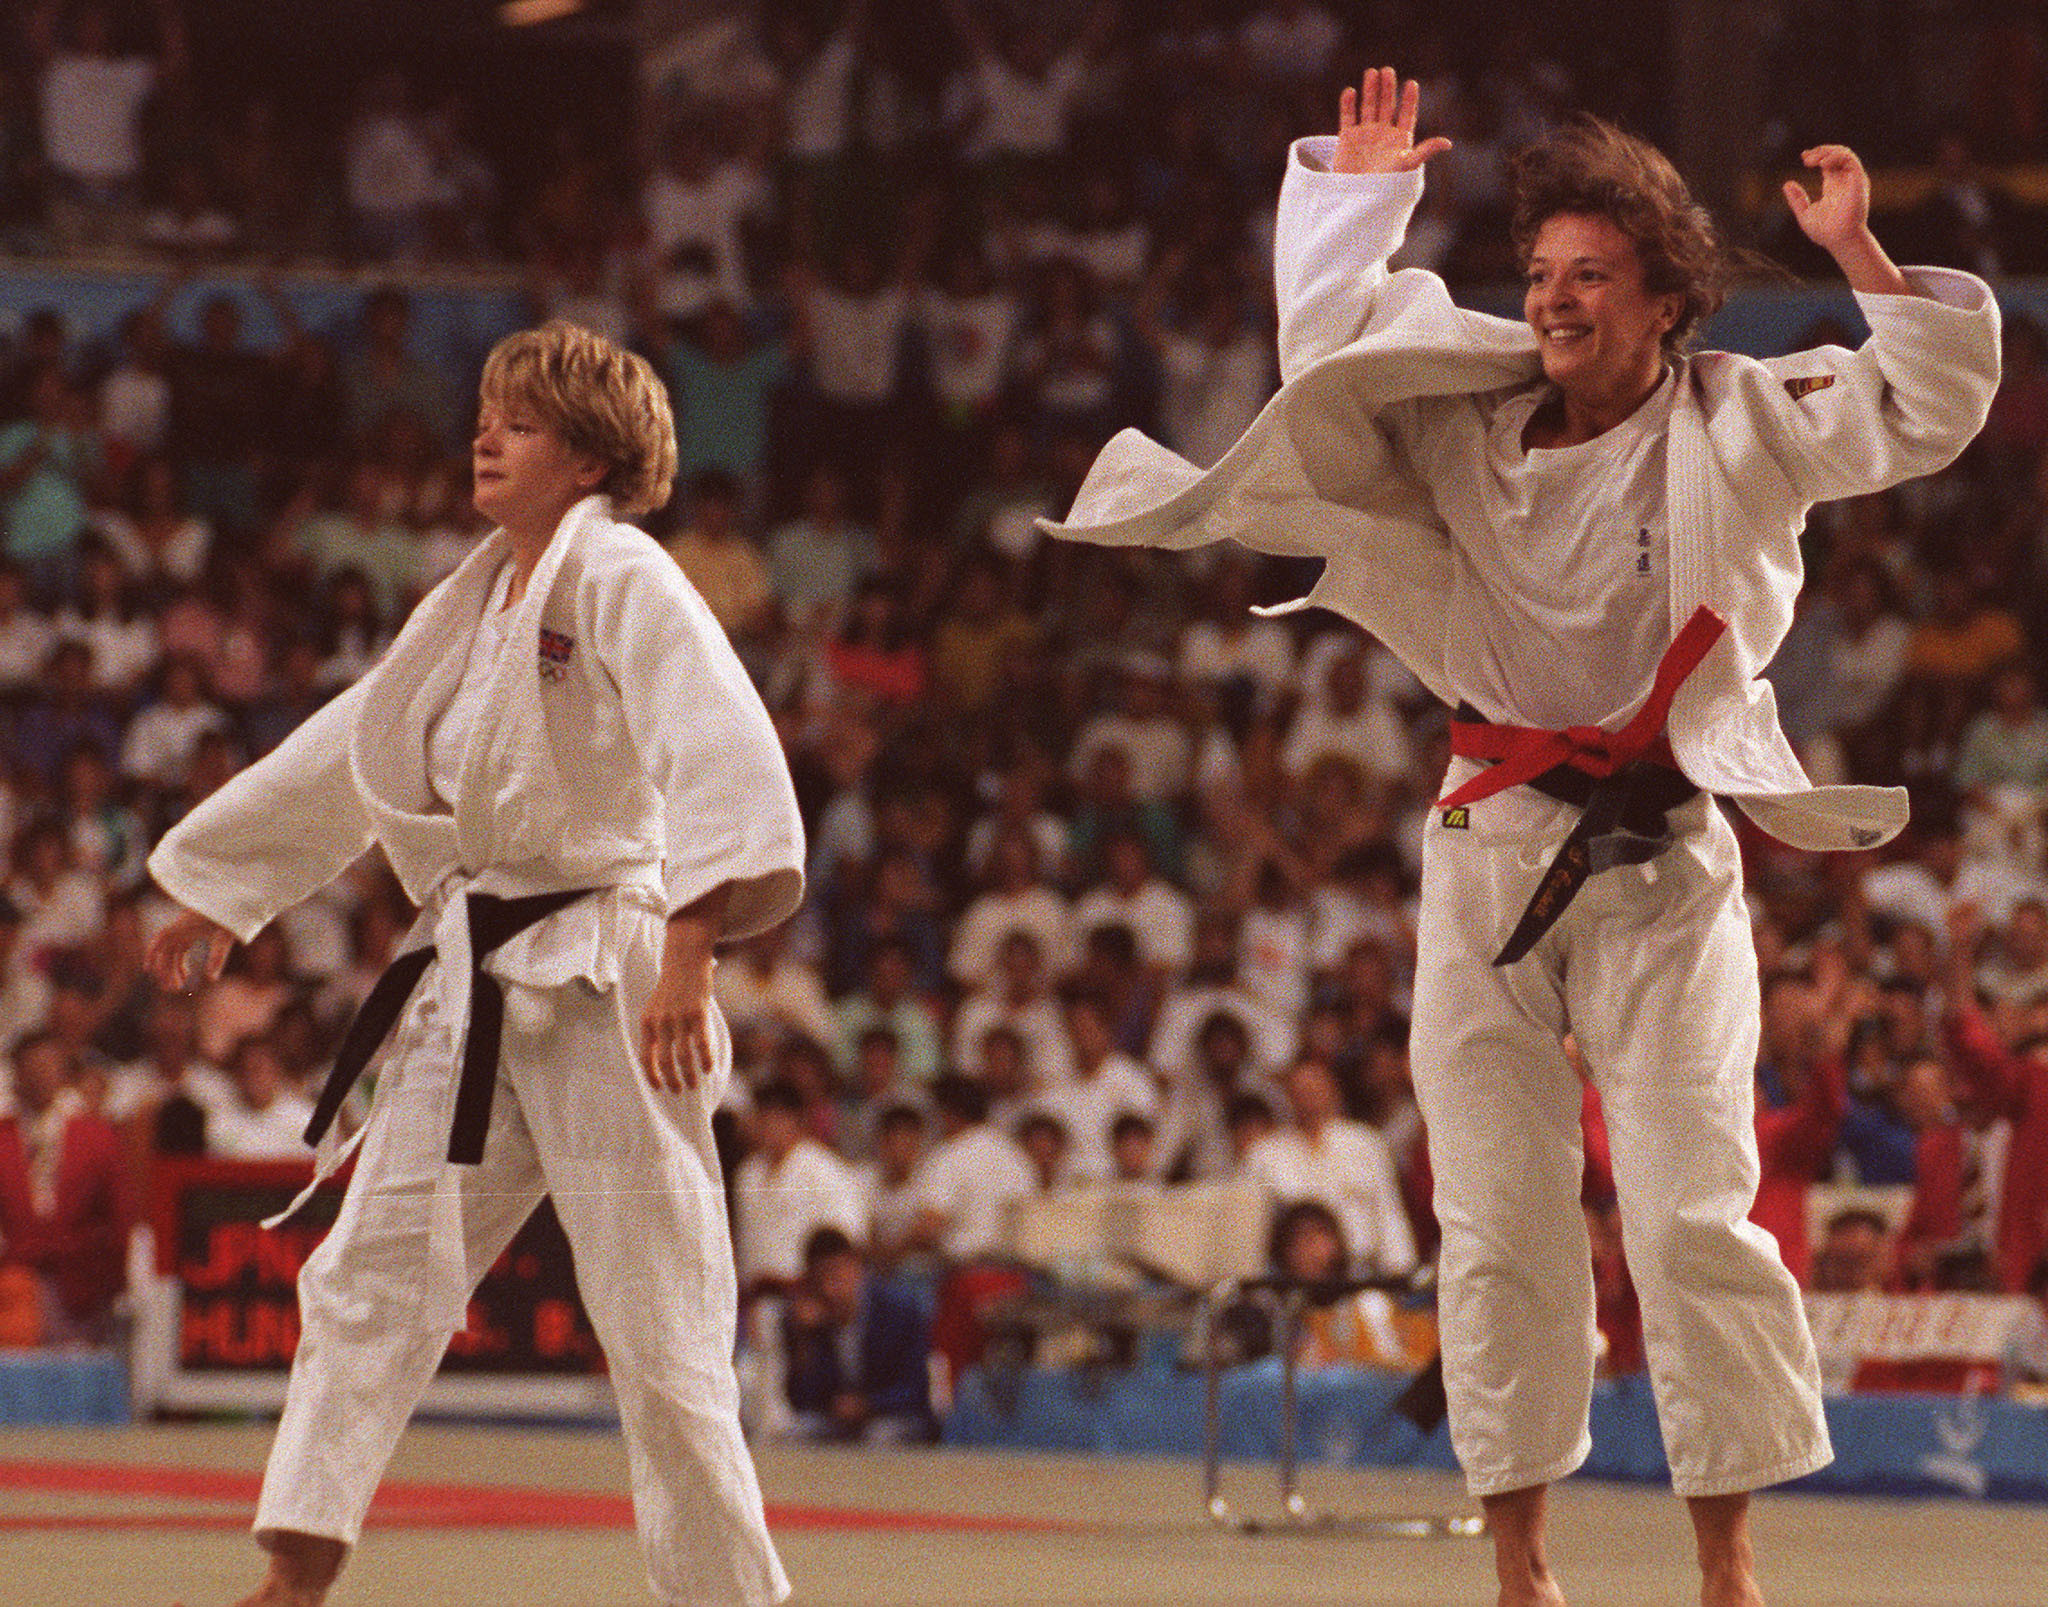 Miriam Blasco of Spain (R) jubilates after defeated Fairbrother of Great Britain in the women's under-56 kg judo final, 31 July 1992 at the Olympic Games in Barcelona ©Getty Images